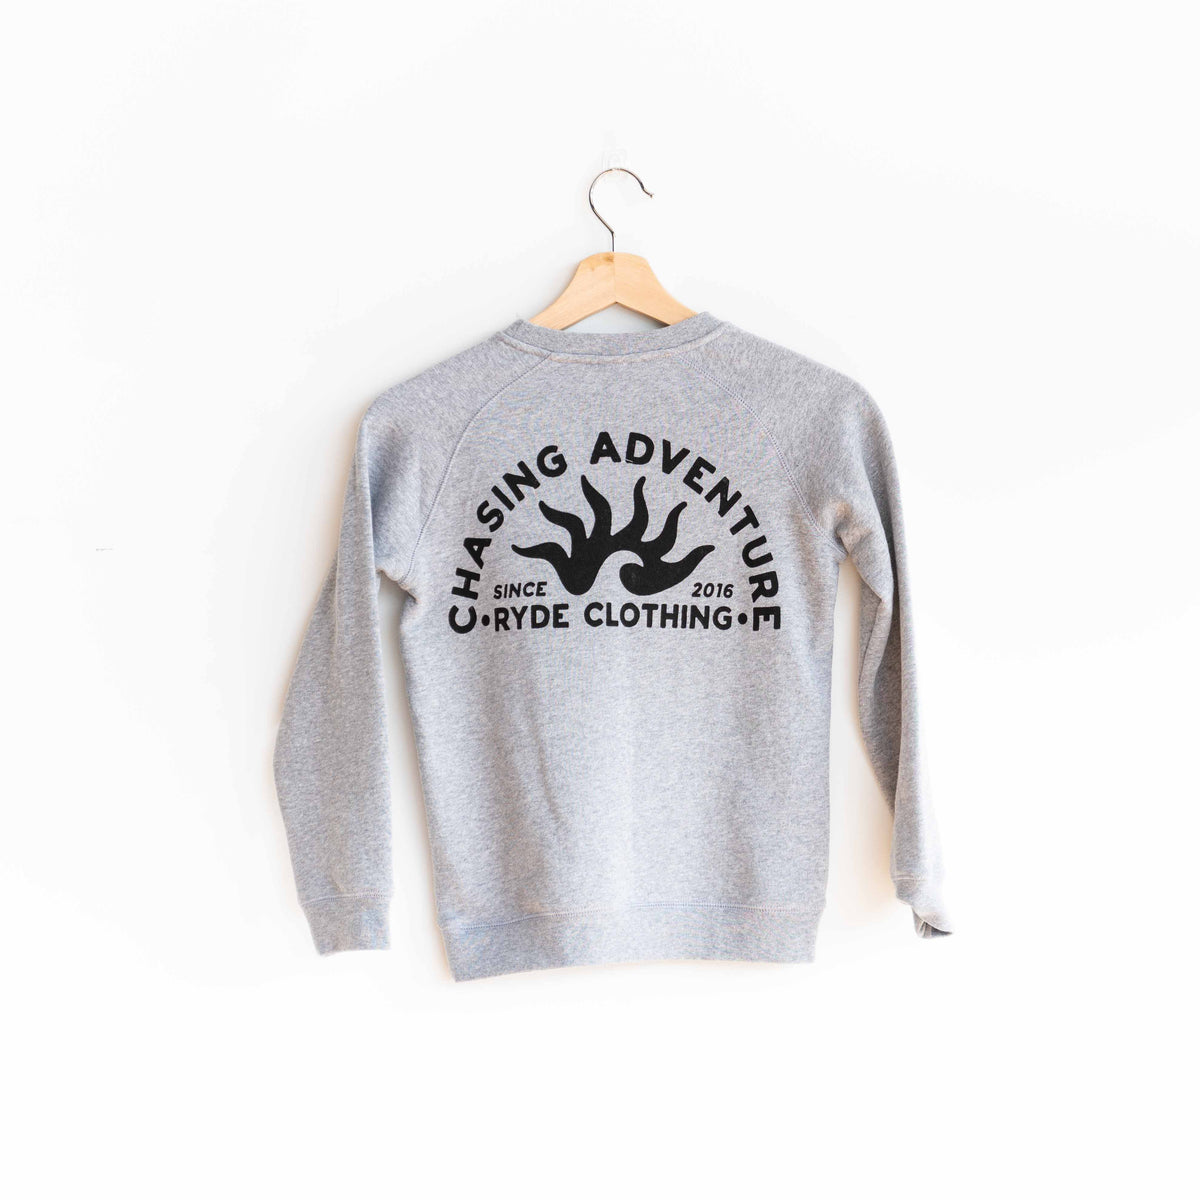 Kids Chasing Adventure Crewneck